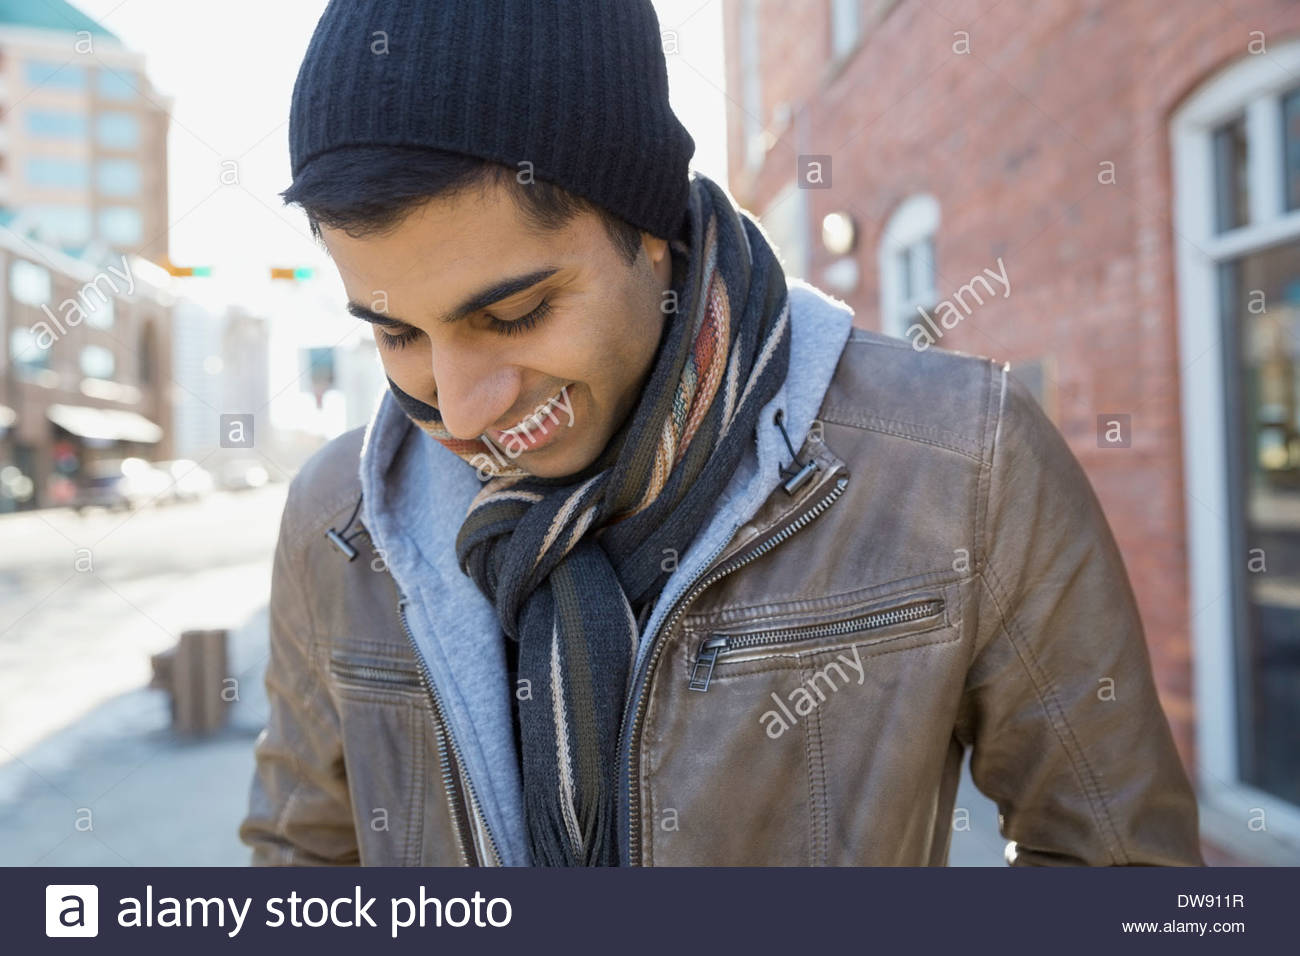 Smiling man standing outdoors looking down Photo Stock